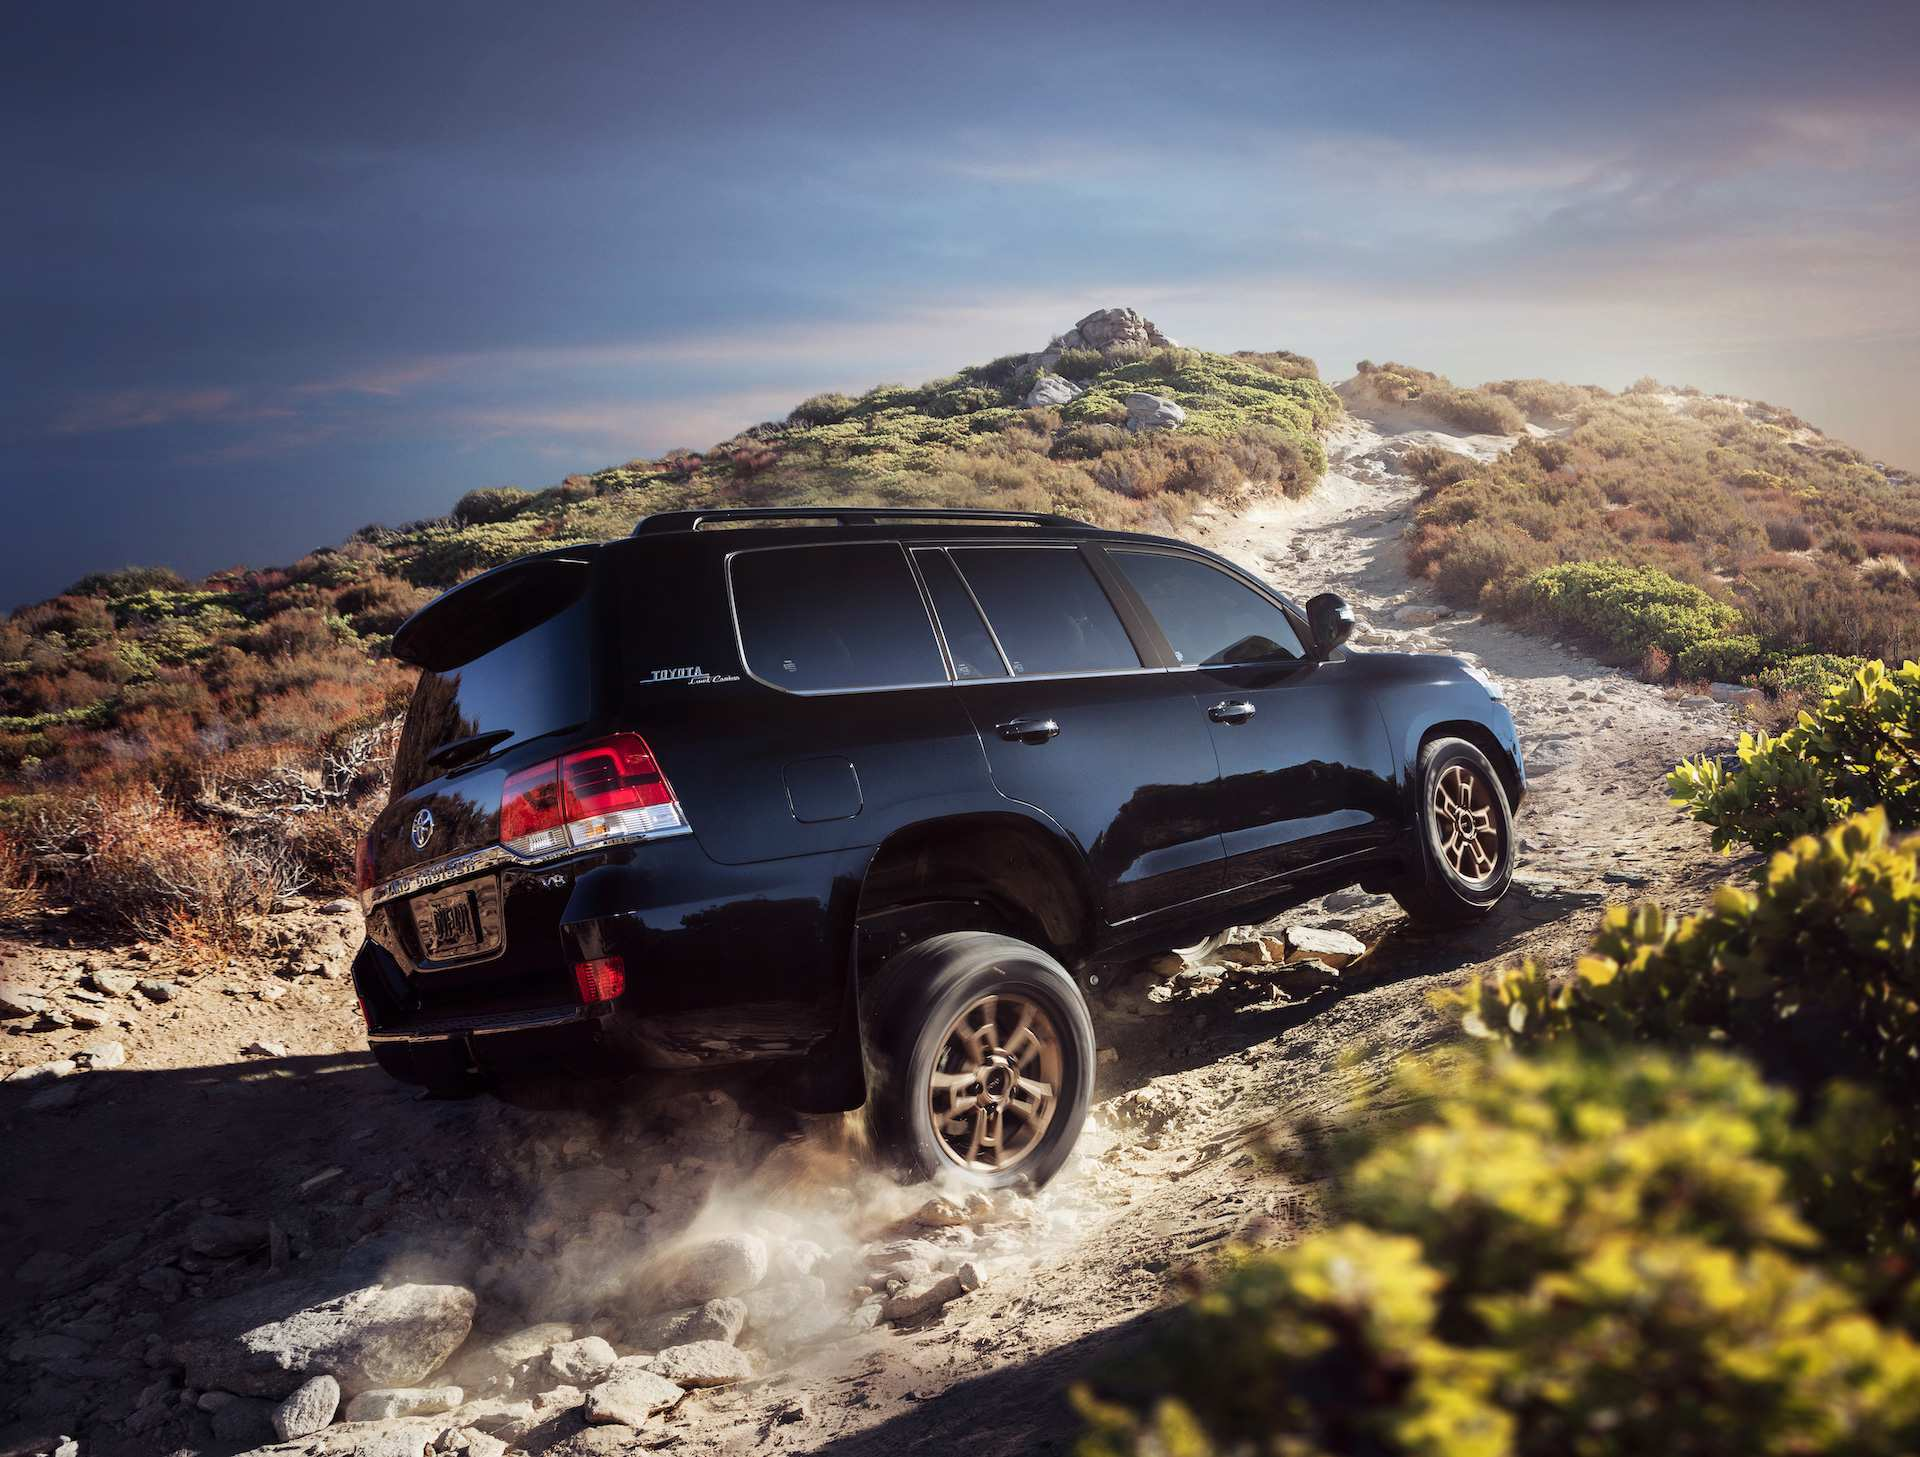 64 All New 2020 Toyota Land Cruiser Usa Configurations